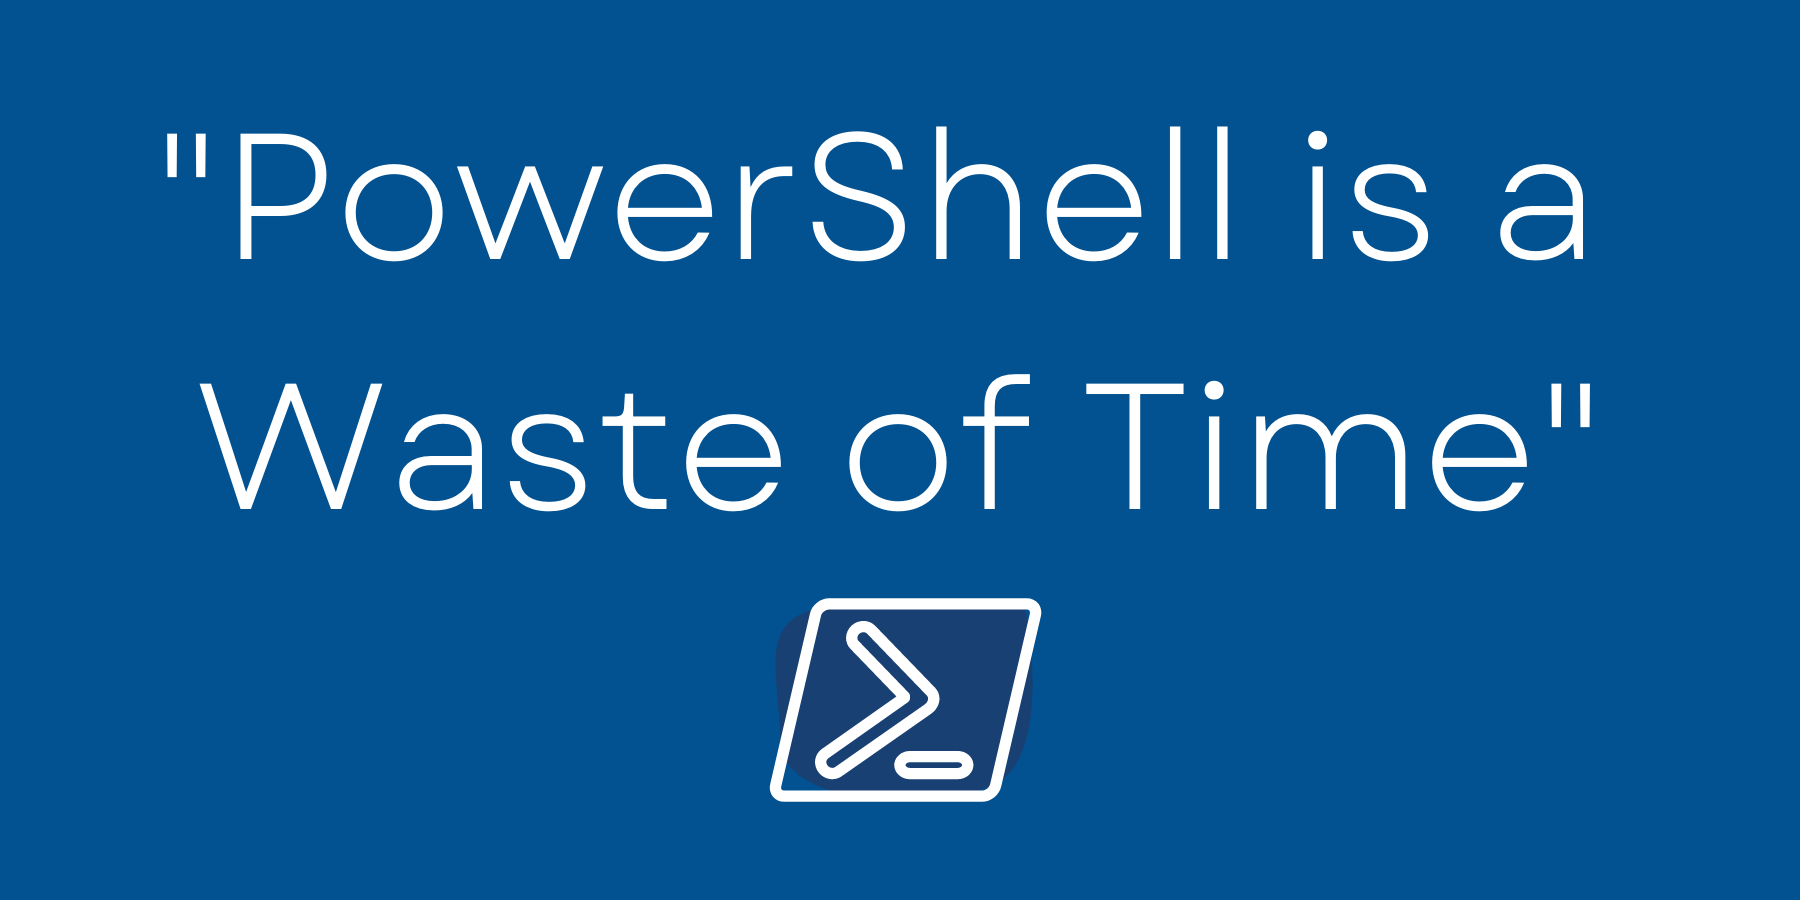 PowerShell is a Waste of Time?